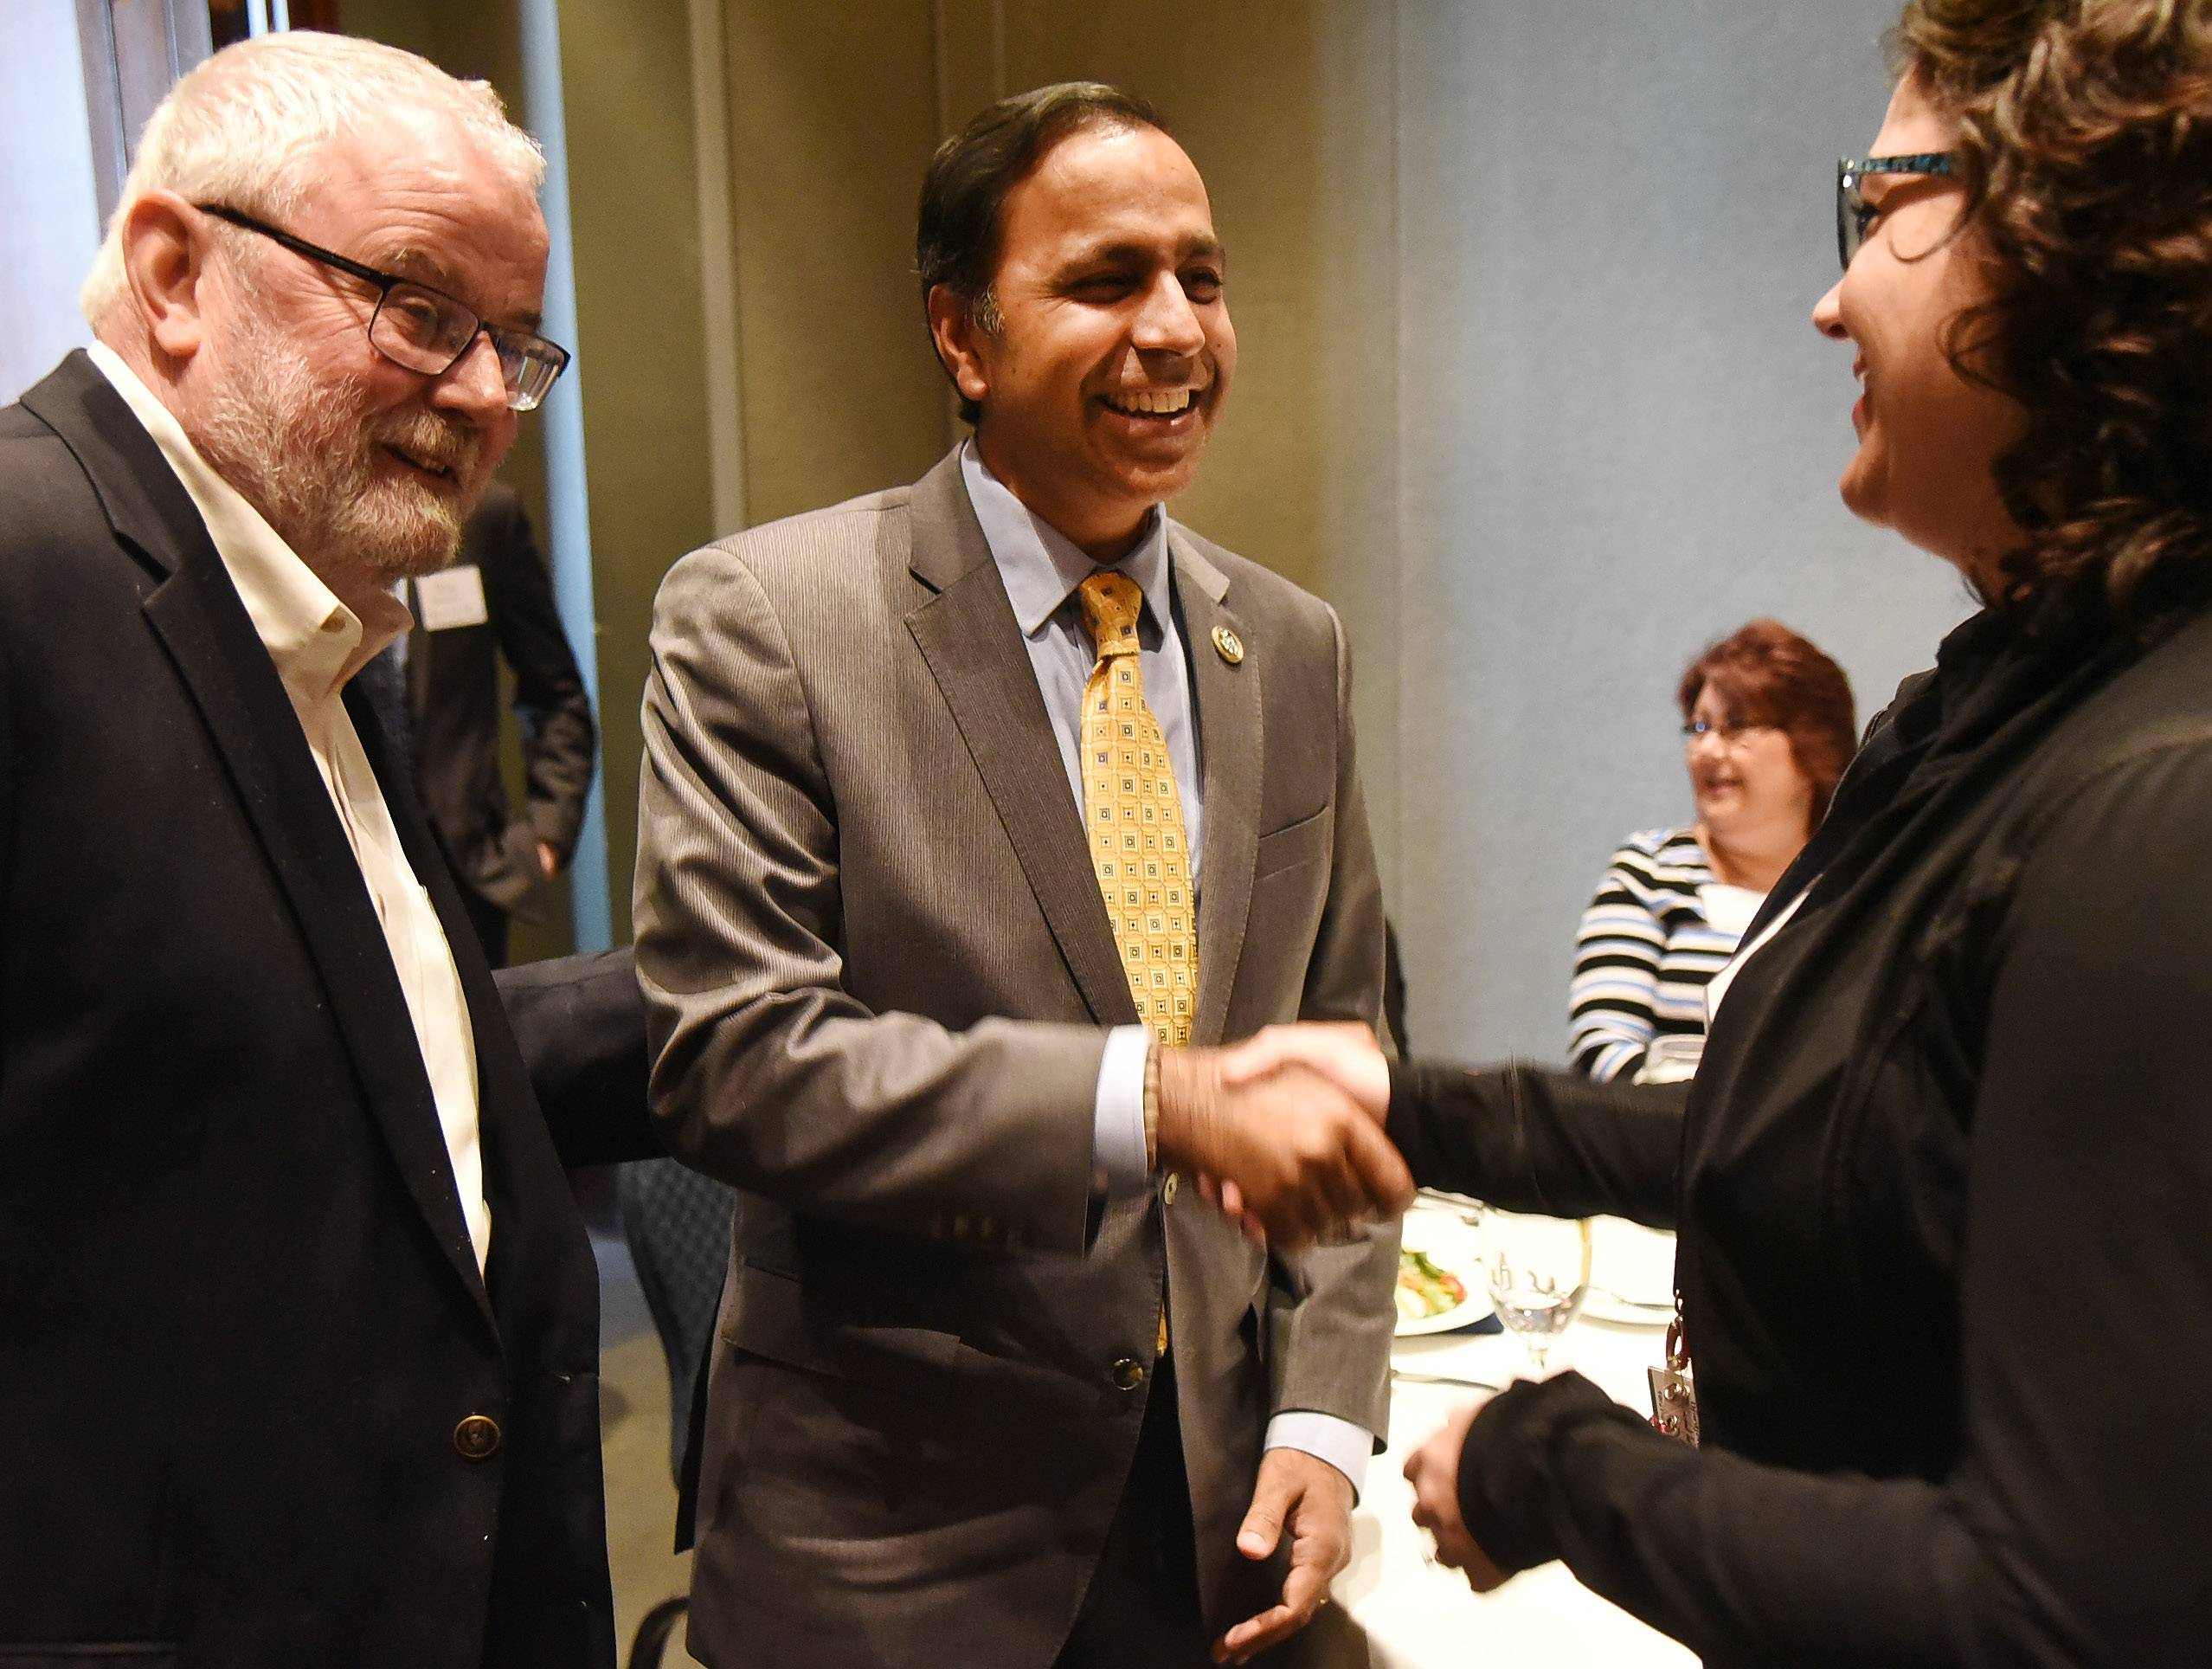 Democratic U.S. Rep. Raja Krishnamoorthi visits with Hoffman Estates Mayor William McLeod and Hoffman Estates Director of Operations and Outreach Jennifer Djordjevic before addressing three chambers of commerce Monday about his first months in Washington. He spoke at Stonegate Conference and Banquet Centre in Hoffman Estates.